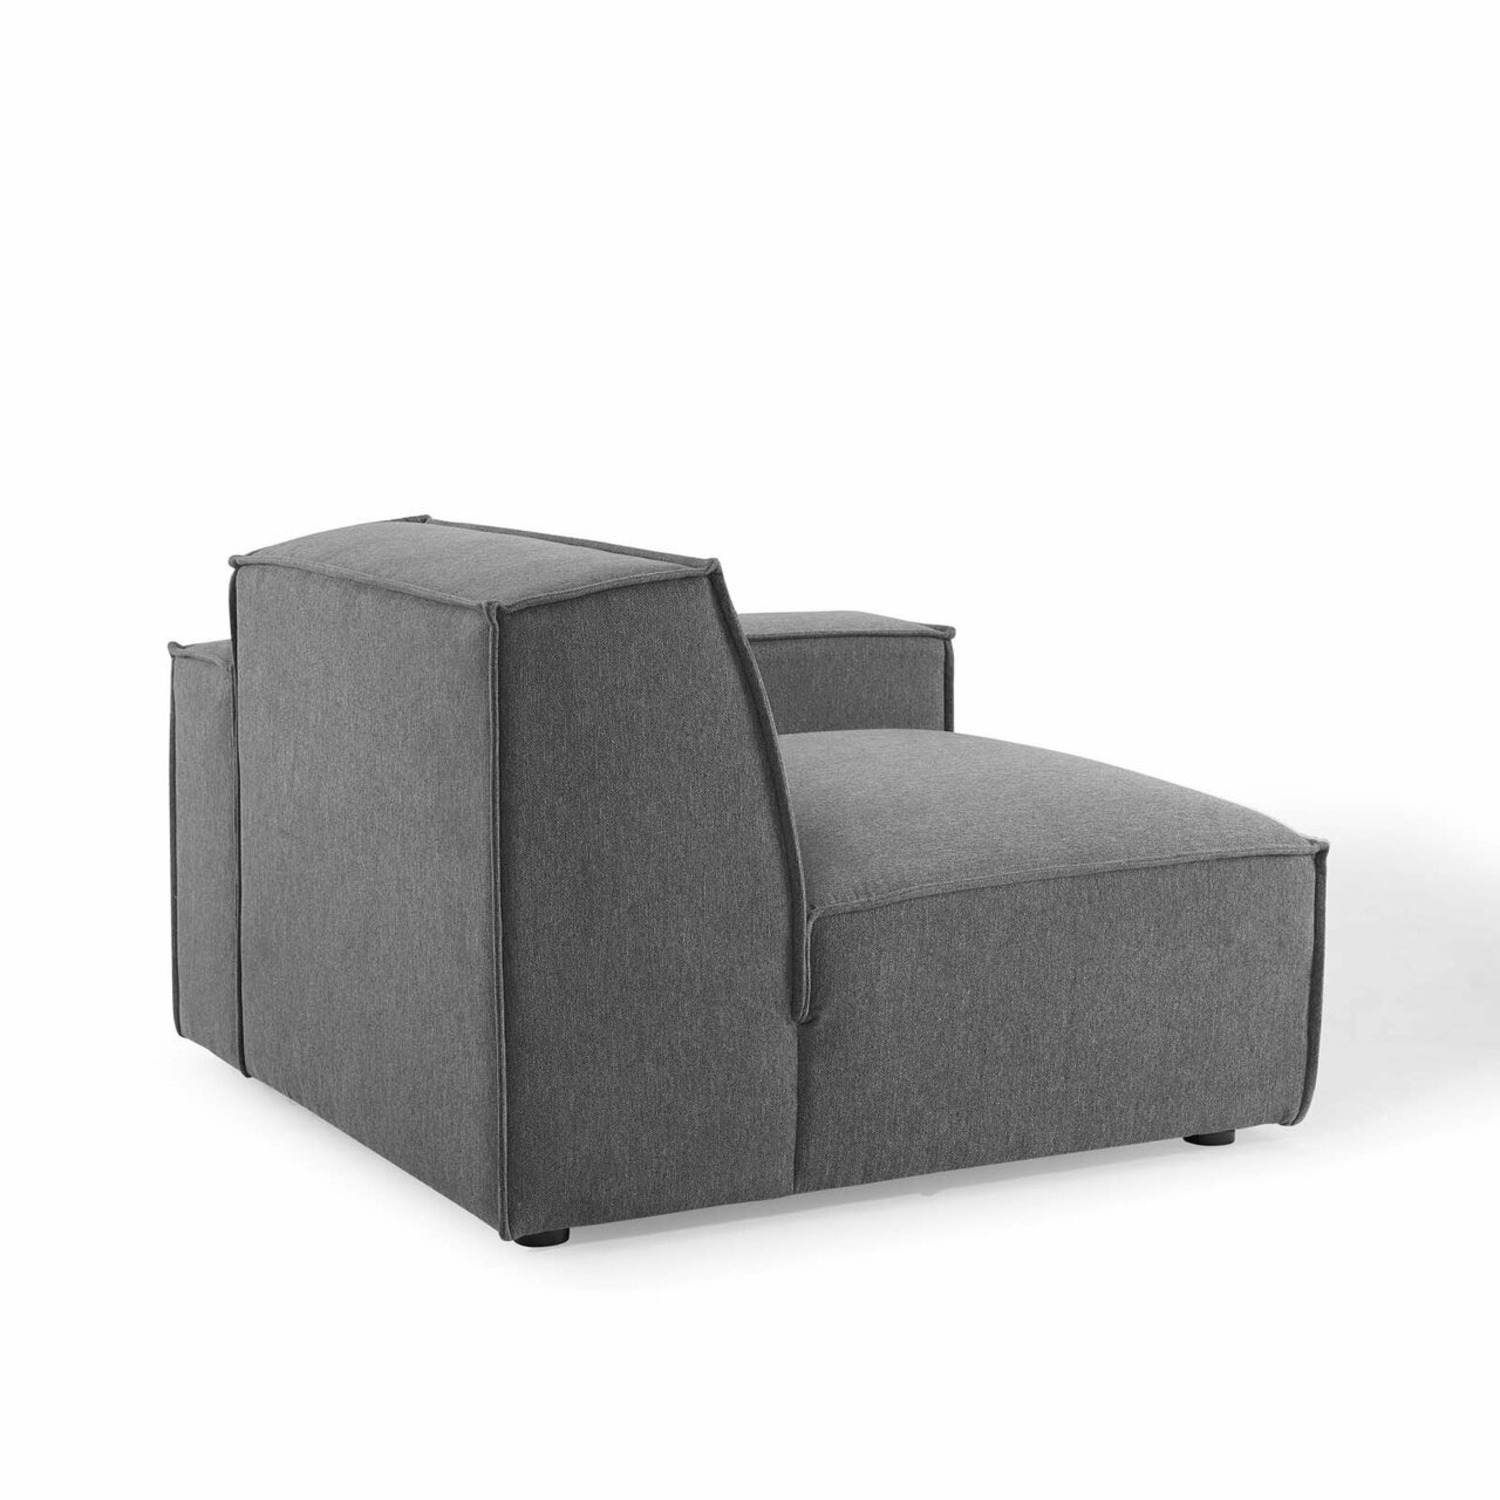 3-Piece Sectional Sofa In Charcoal Upholstery - image-4